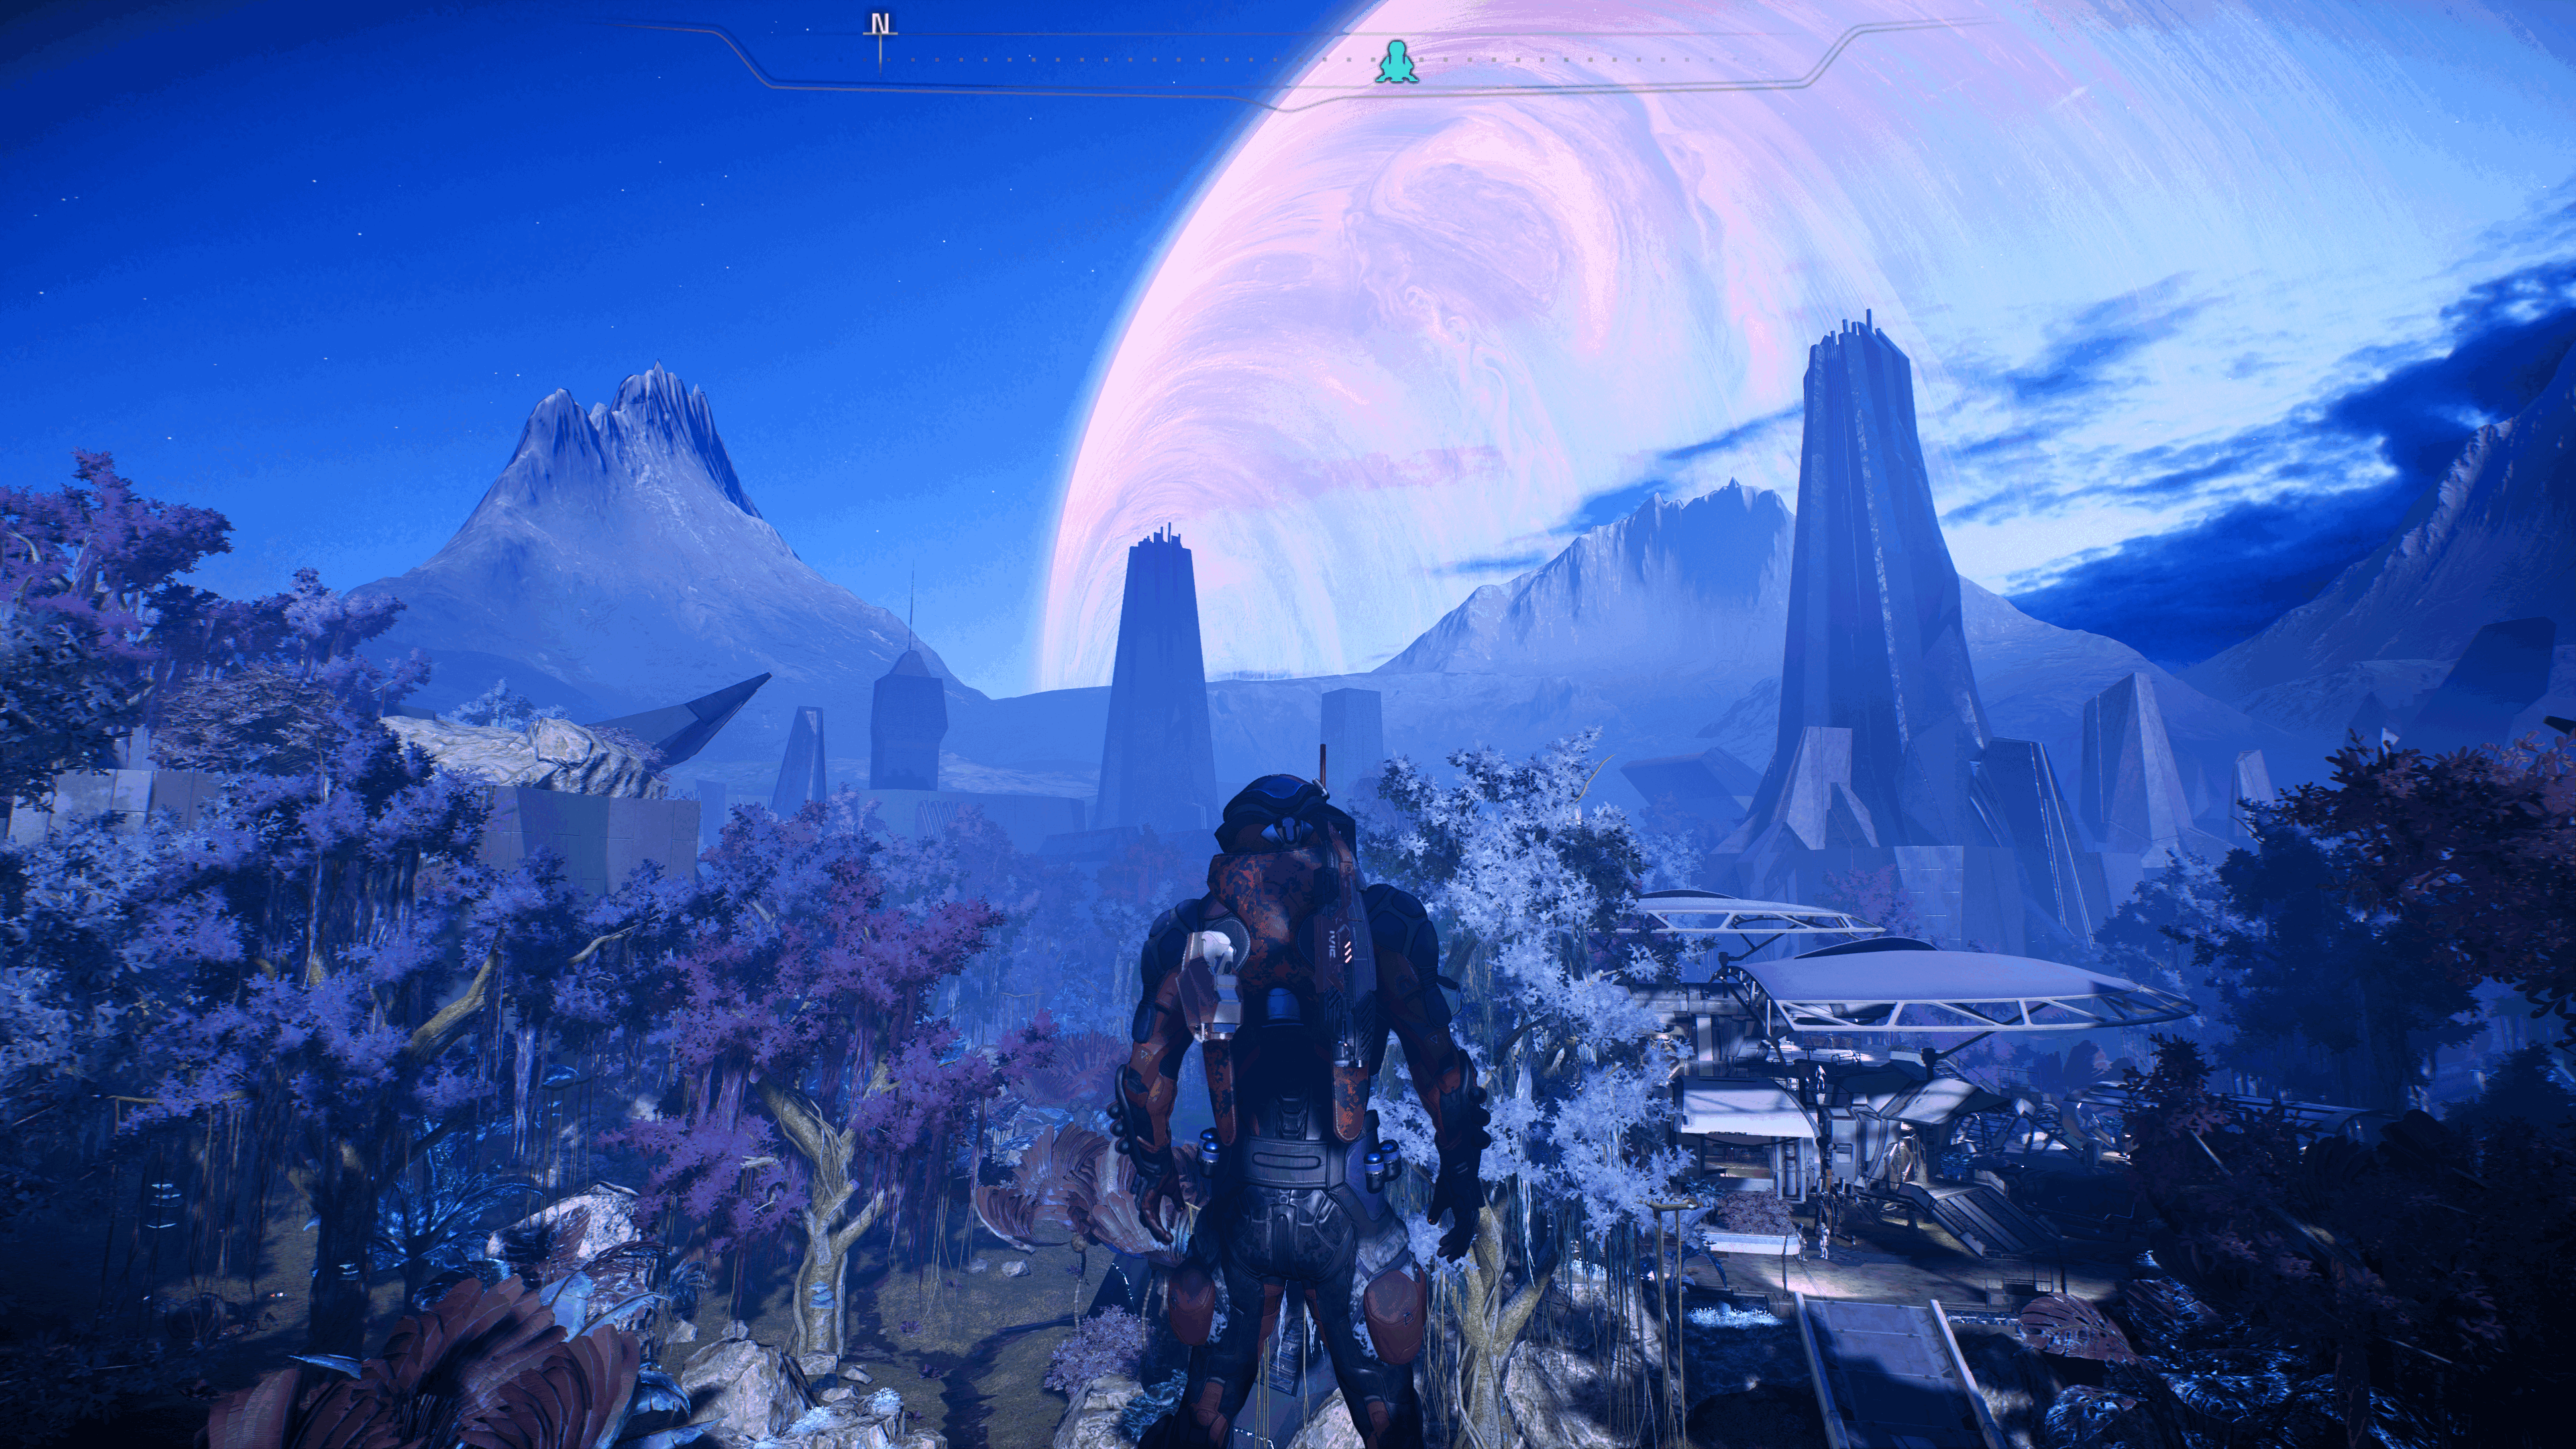 Mass Effectandromeda Let S Talk About Mass Effect Andromeda S Story And Tone Vg247